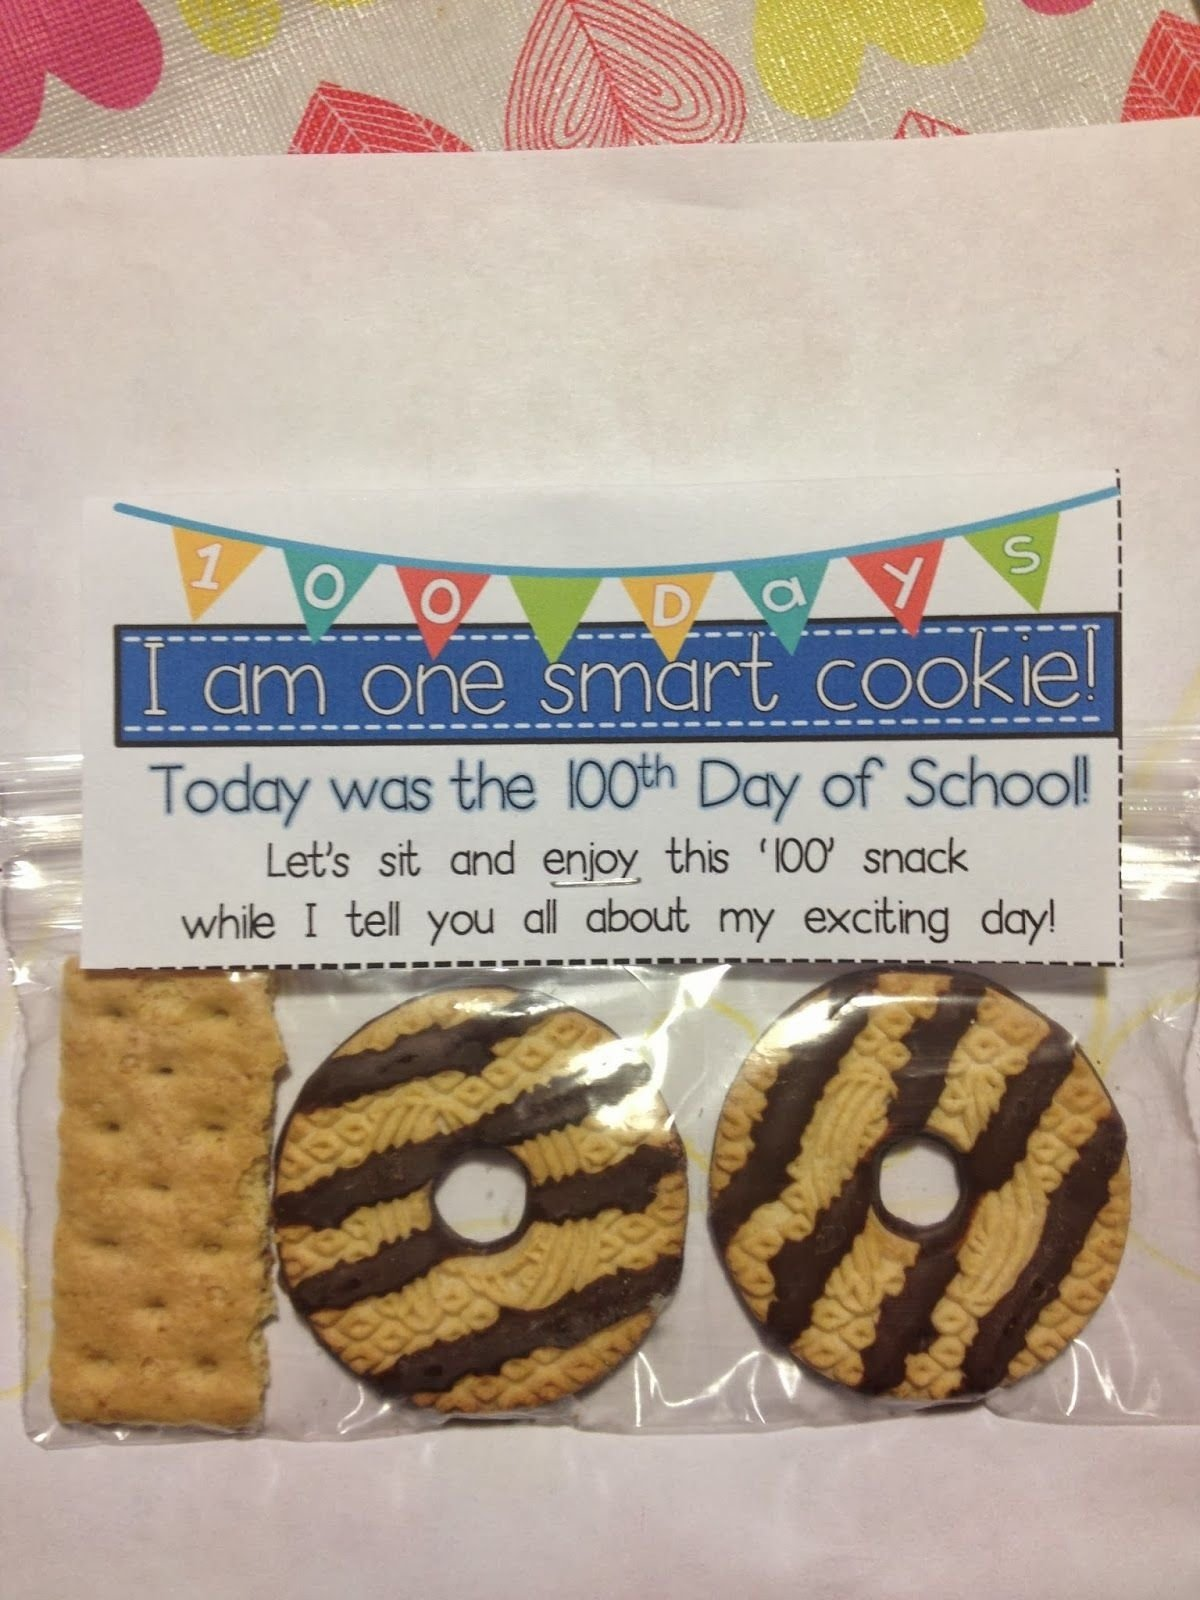 10 Attractive Snack Ideas For Kindergarten Class the 100th day finally came nice treat to celebrate the day one 2021